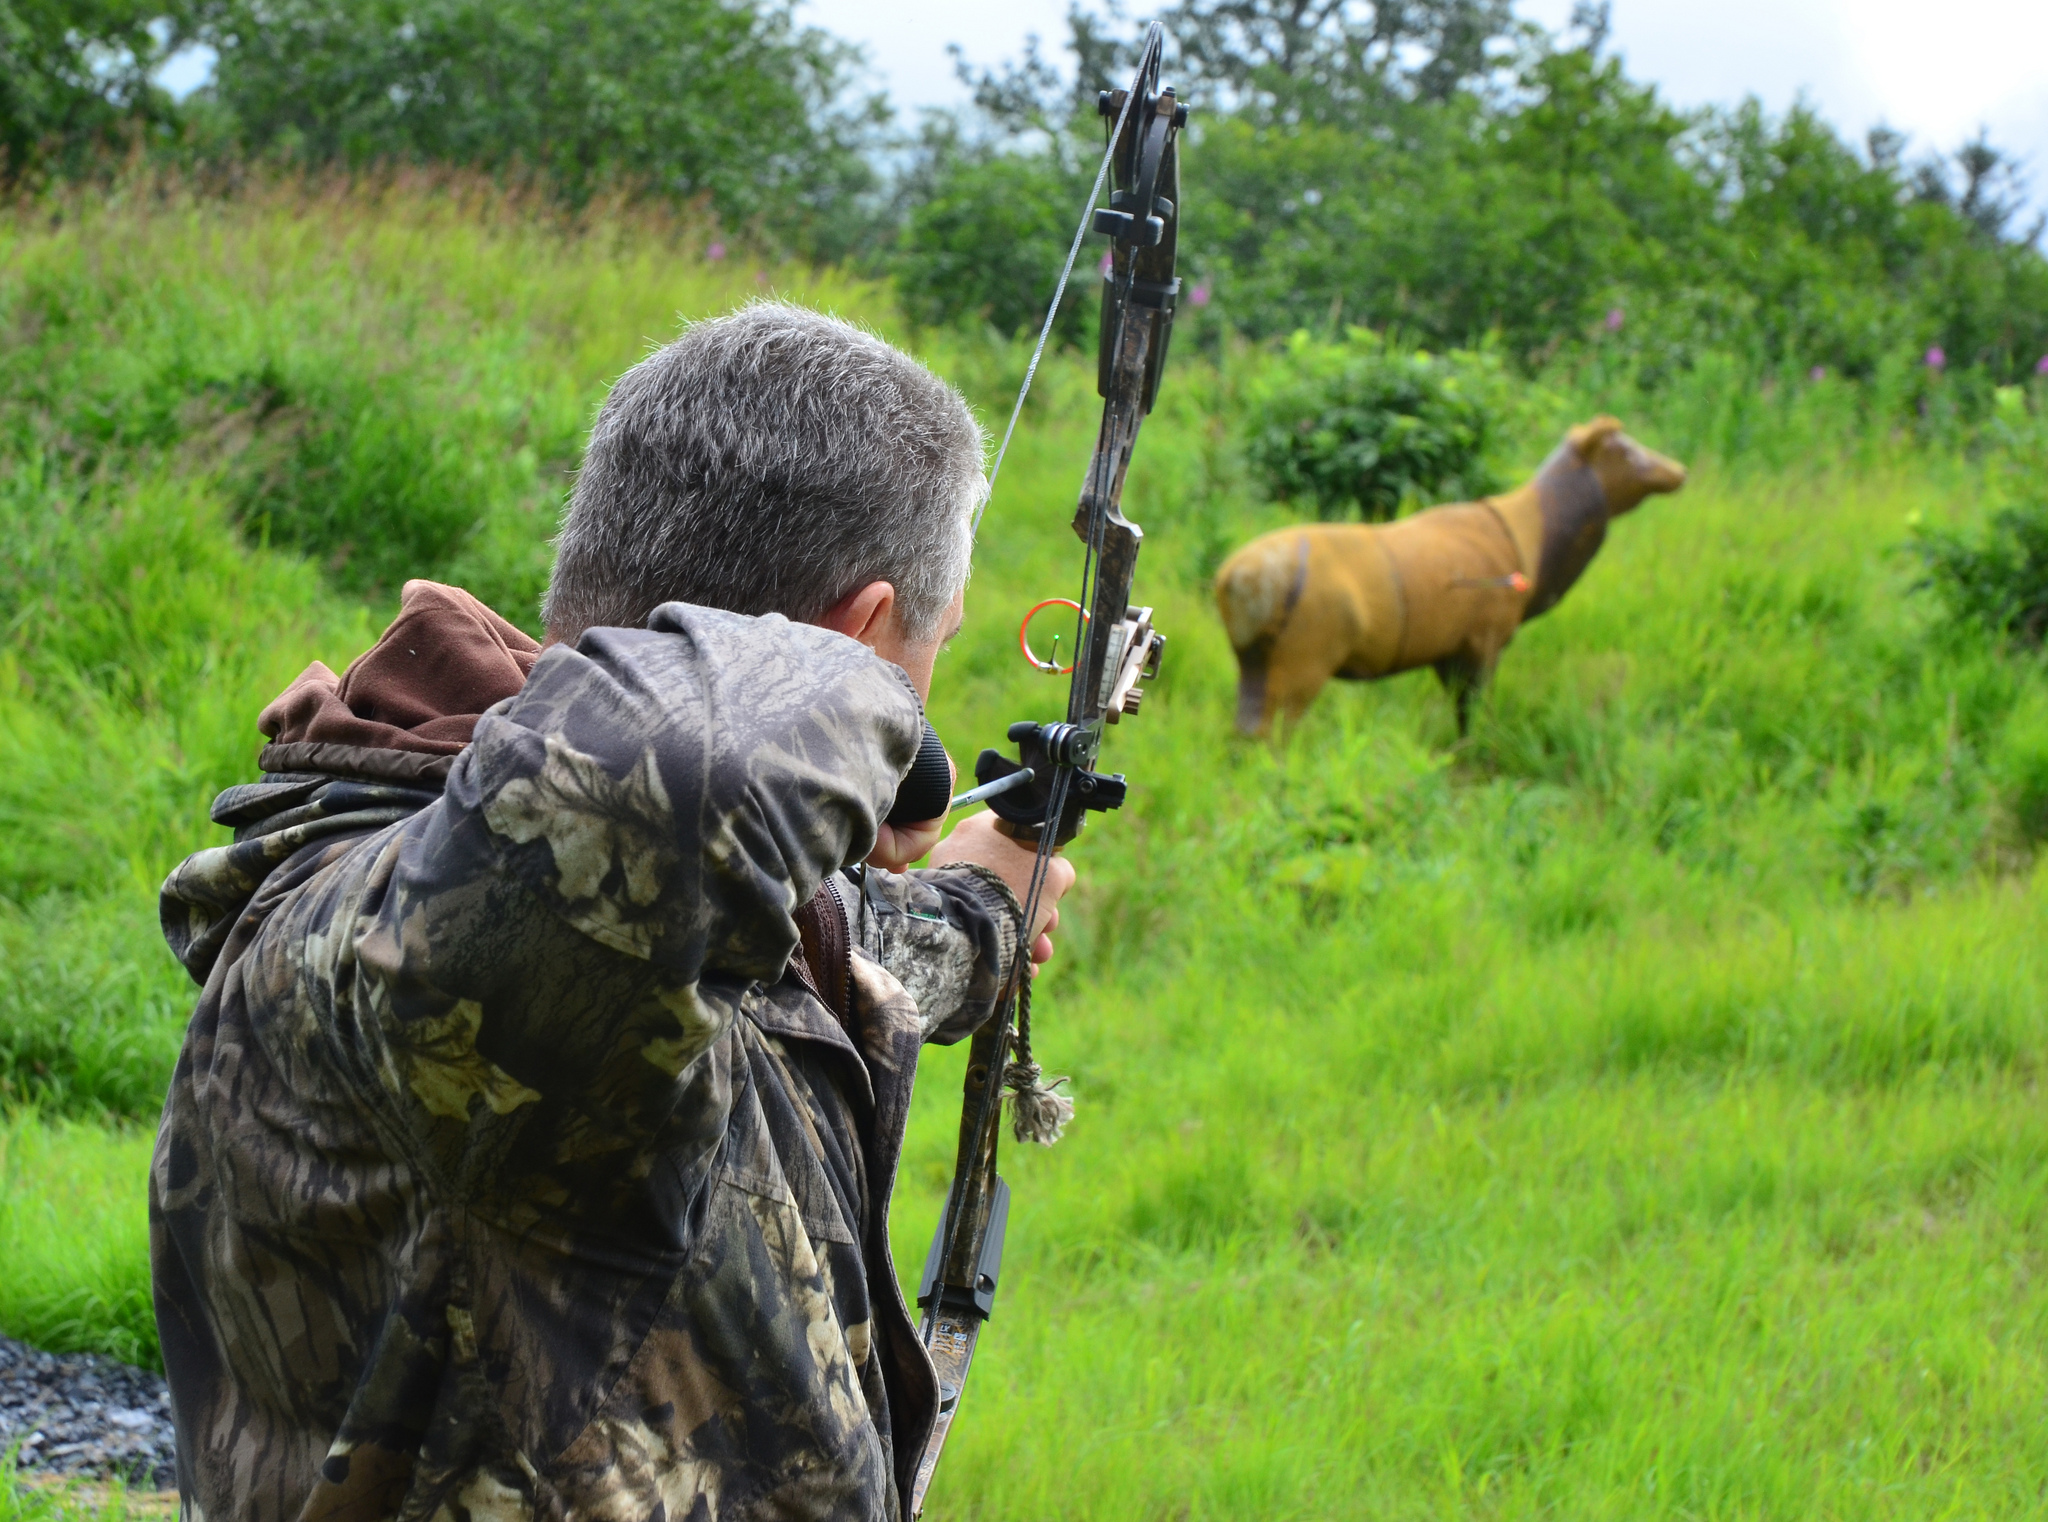 hunting and its benefits The hunting industry in massachusetts plays an important economic, social and environmental role that benefits residents as a whole, according to the us fish and wildlife service.